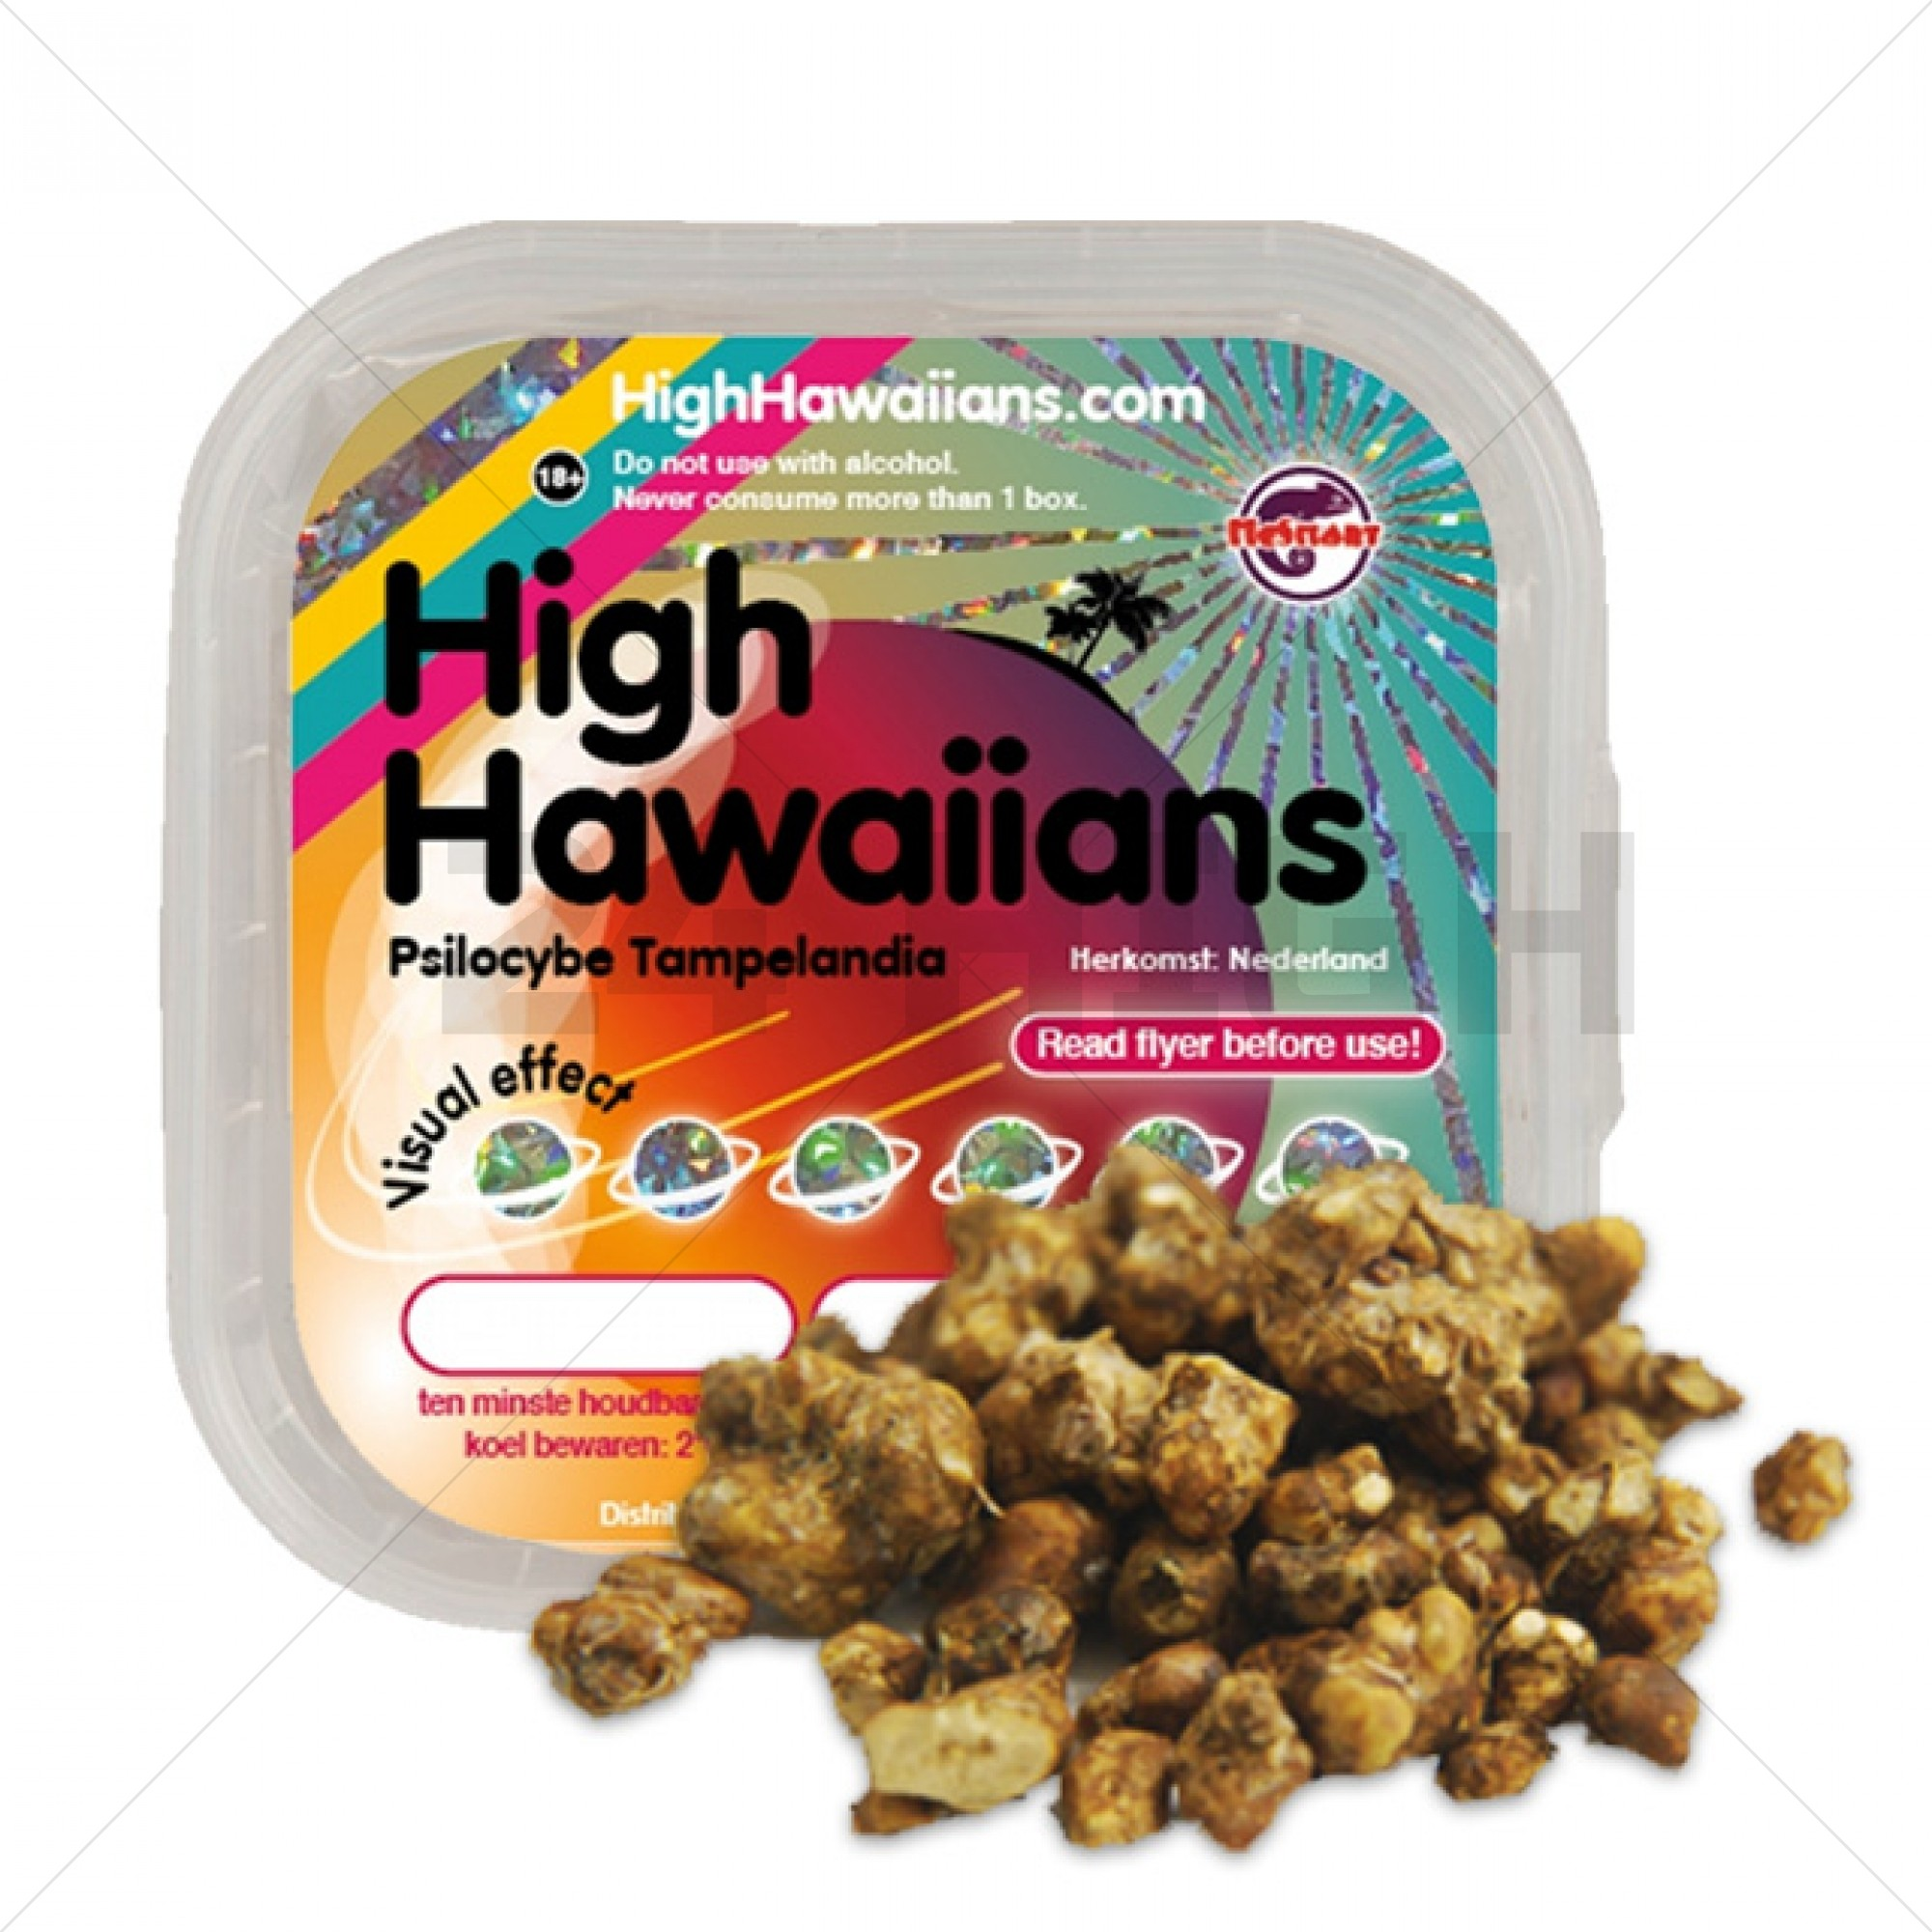 High Hawaiians Truffels